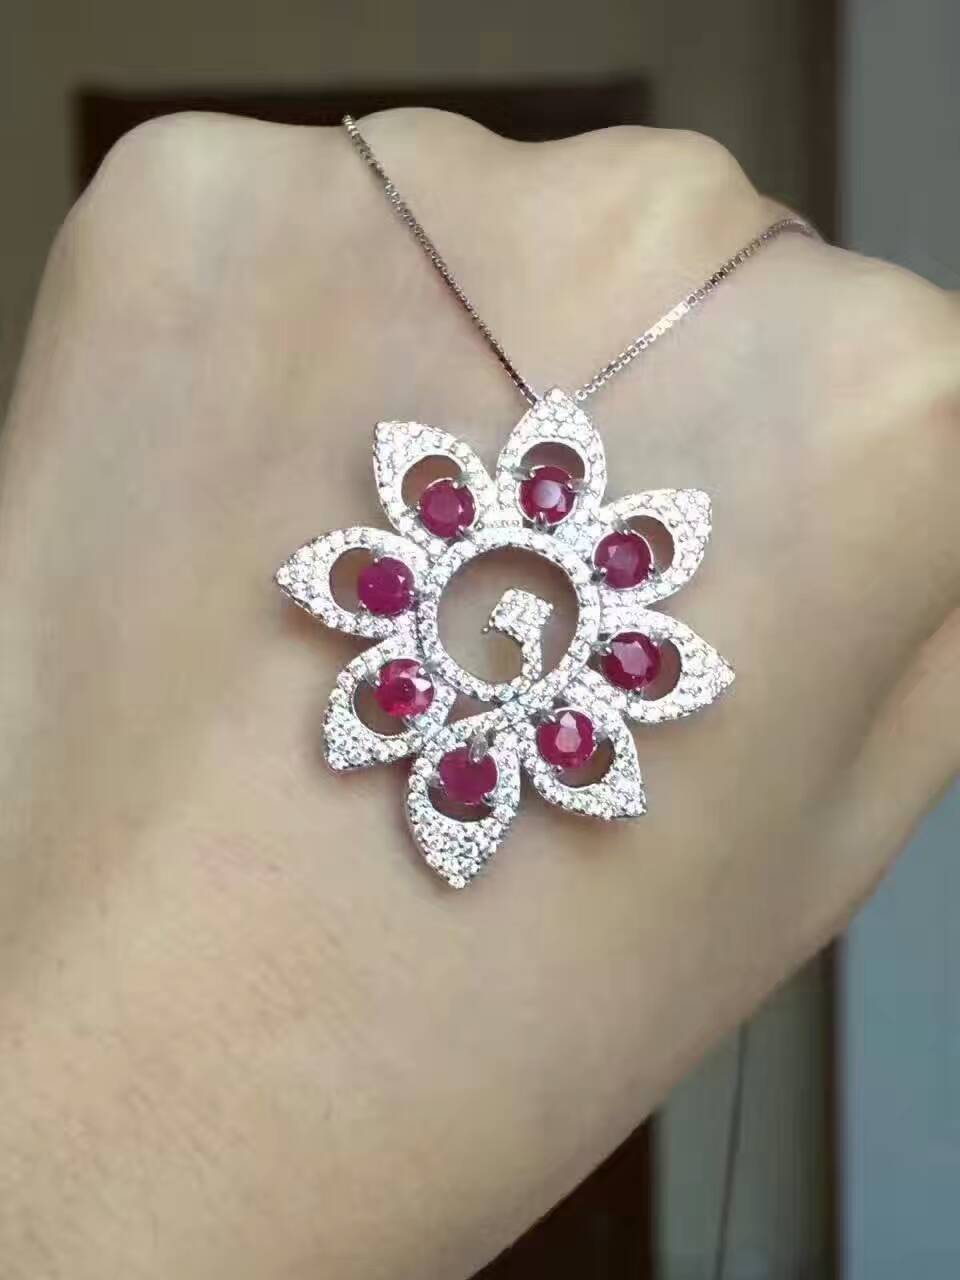 natural red ruby pendant S925 silver Natural gemstone Pendant Necklace Luxury elegant Peacock open women gift party fine jewelrynatural red ruby pendant S925 silver Natural gemstone Pendant Necklace Luxury elegant Peacock open women gift party fine jewelry